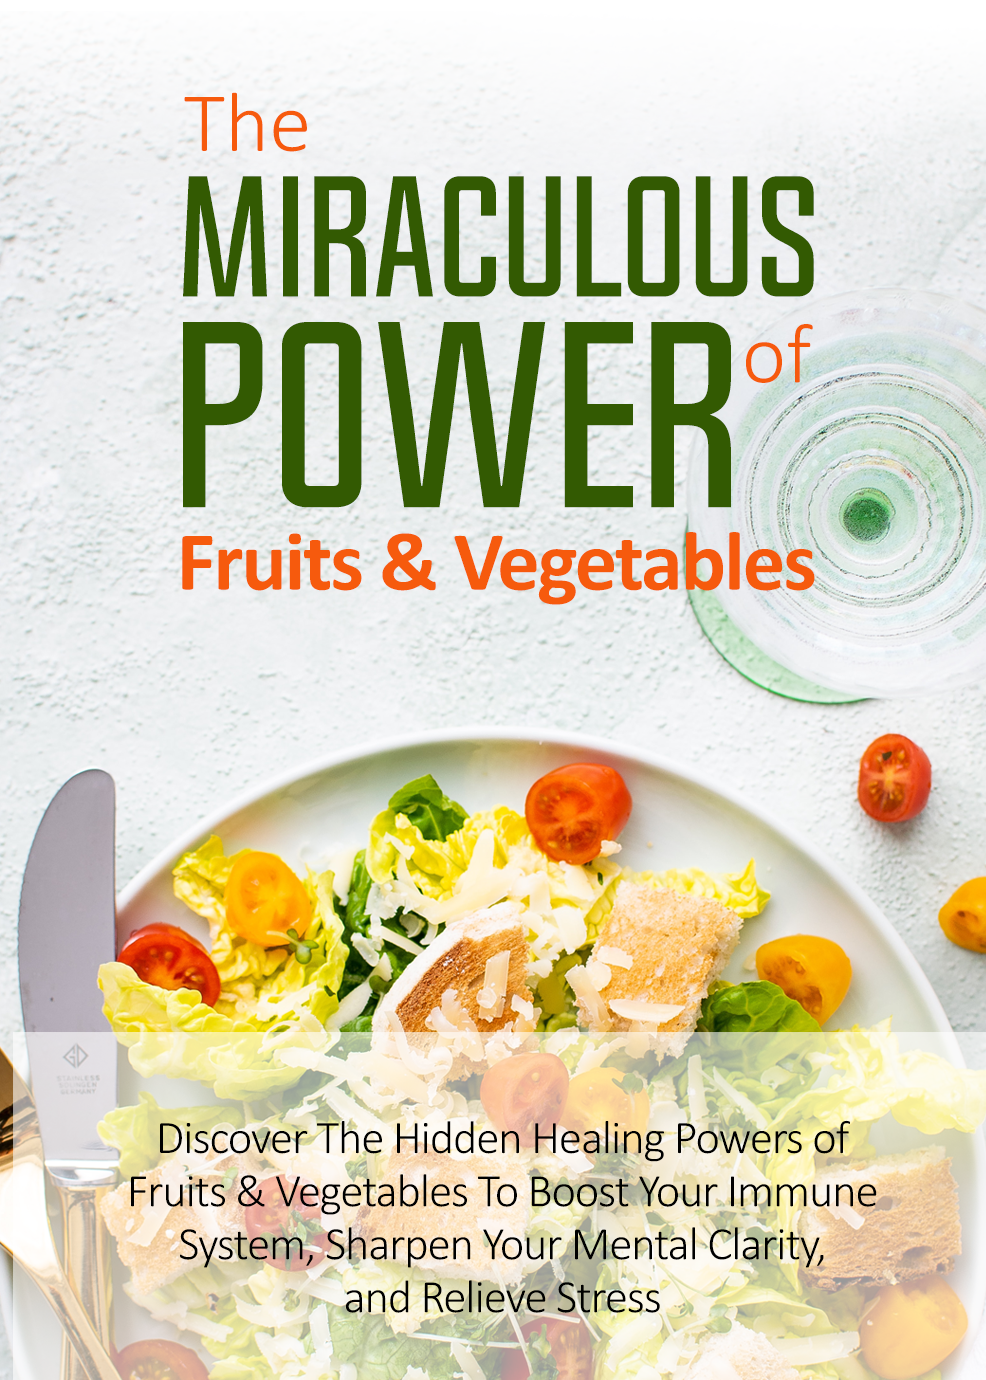 The Miraculous Power of Fruit & Vegetables (Discover The Hidden Healing Powers Of Fruits & Vegetables To Boost Your Immune System, Sharpen Your Mental Clarity And Relieve Stress) Ebook's Book Image